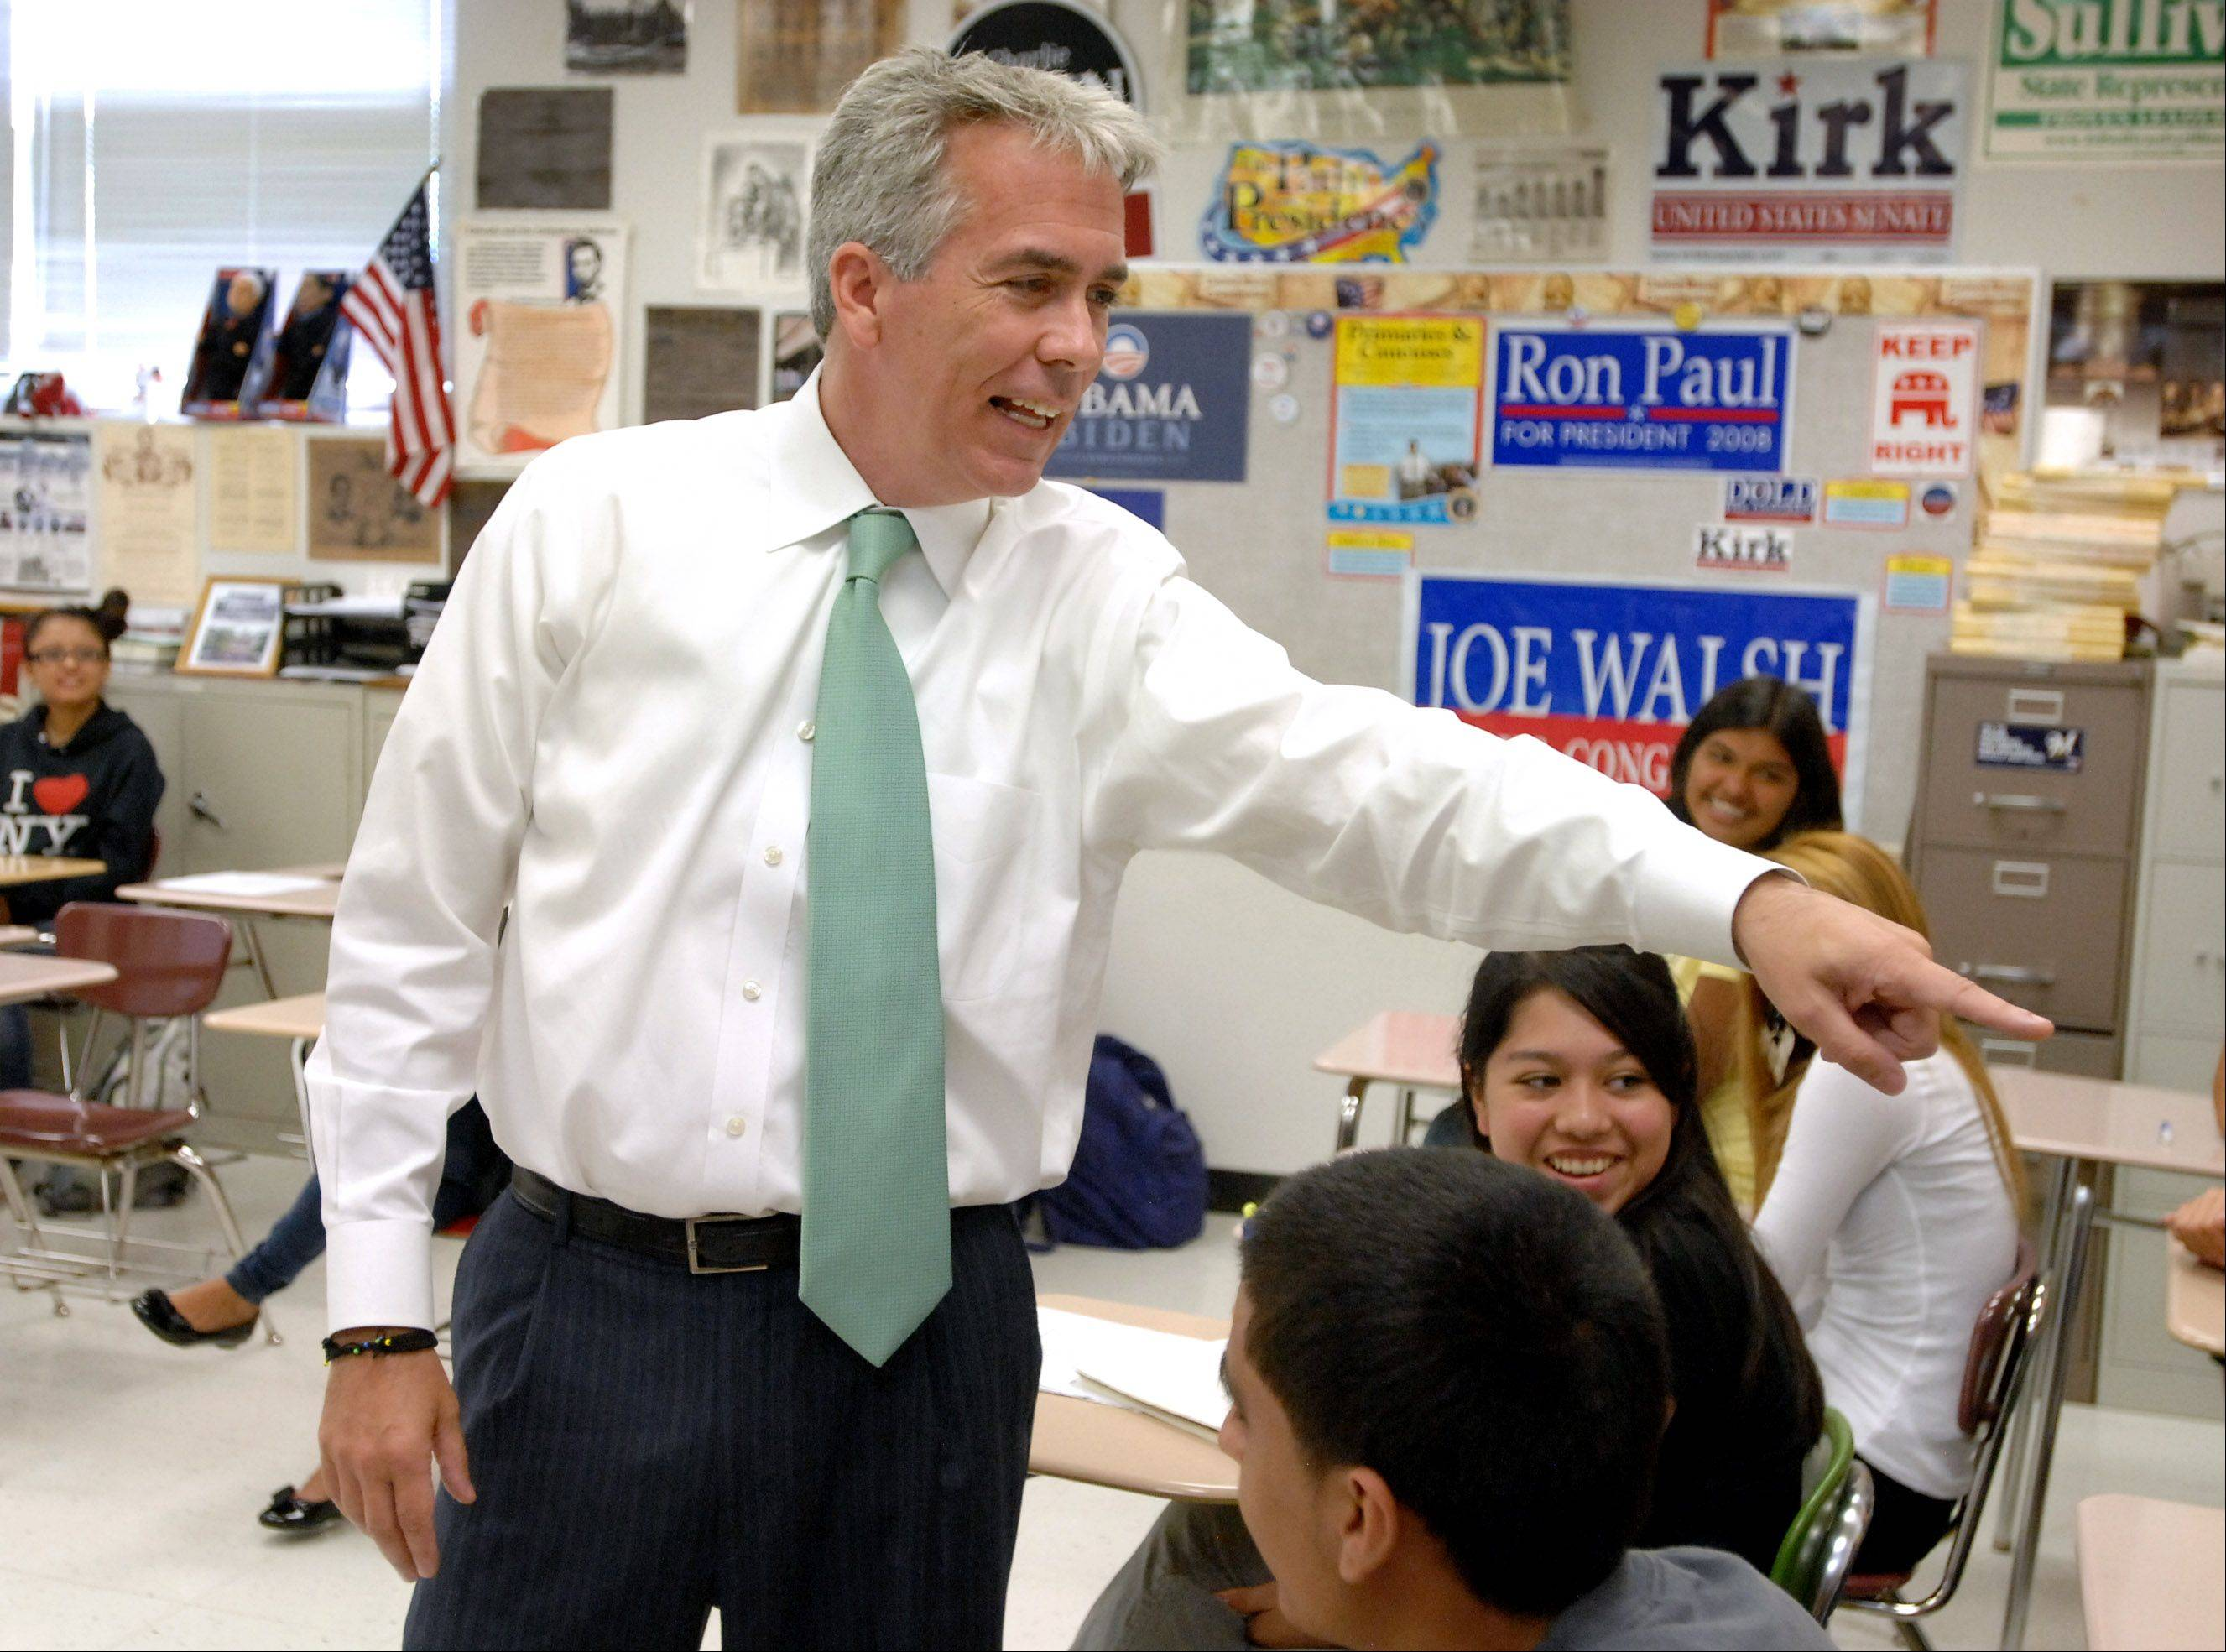 U.S. Rep. Joe Walsh talks with Advanced Placement government students at Mundelein High School in September. He's seeking re-election to his 8th District seat.